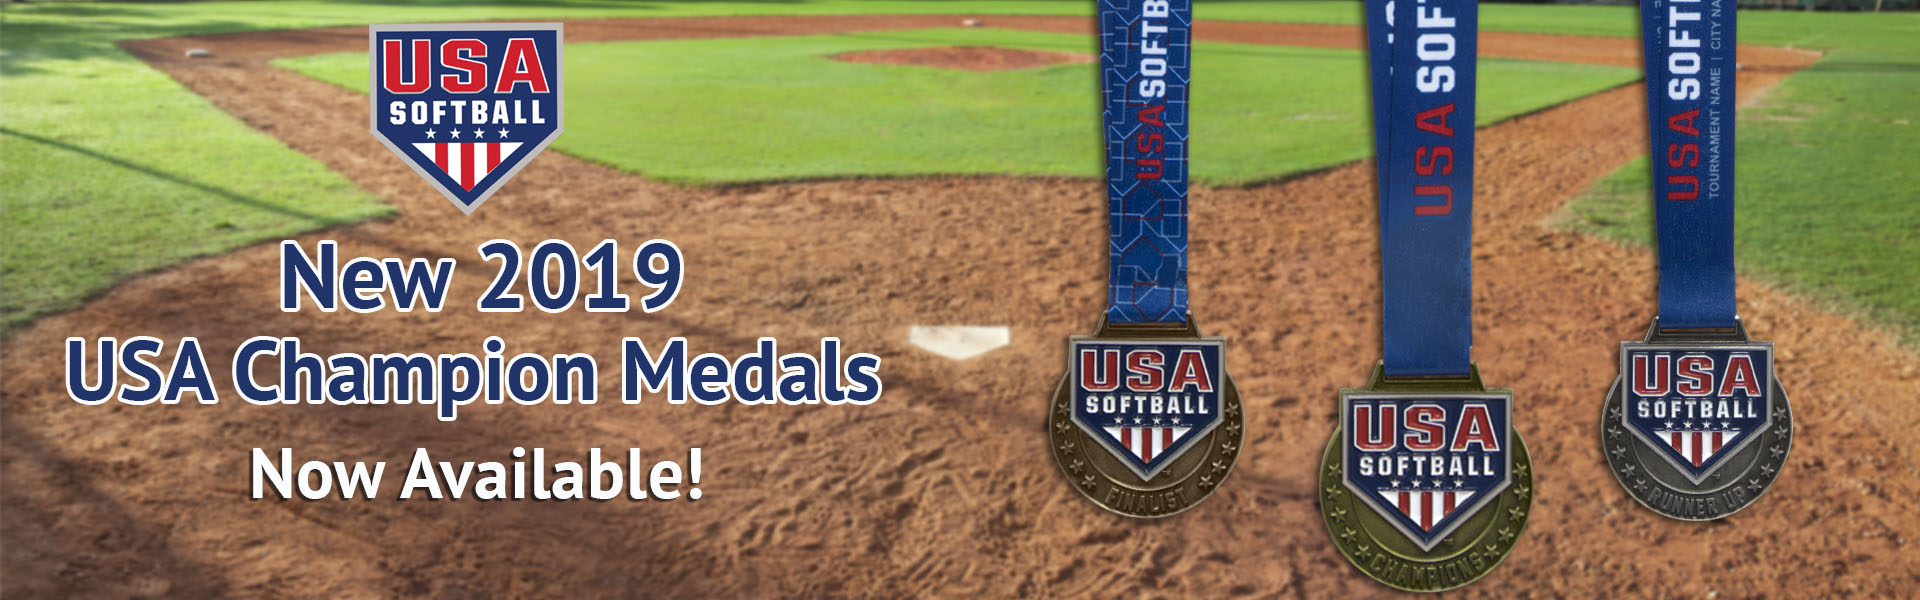 USA Softball Banner2